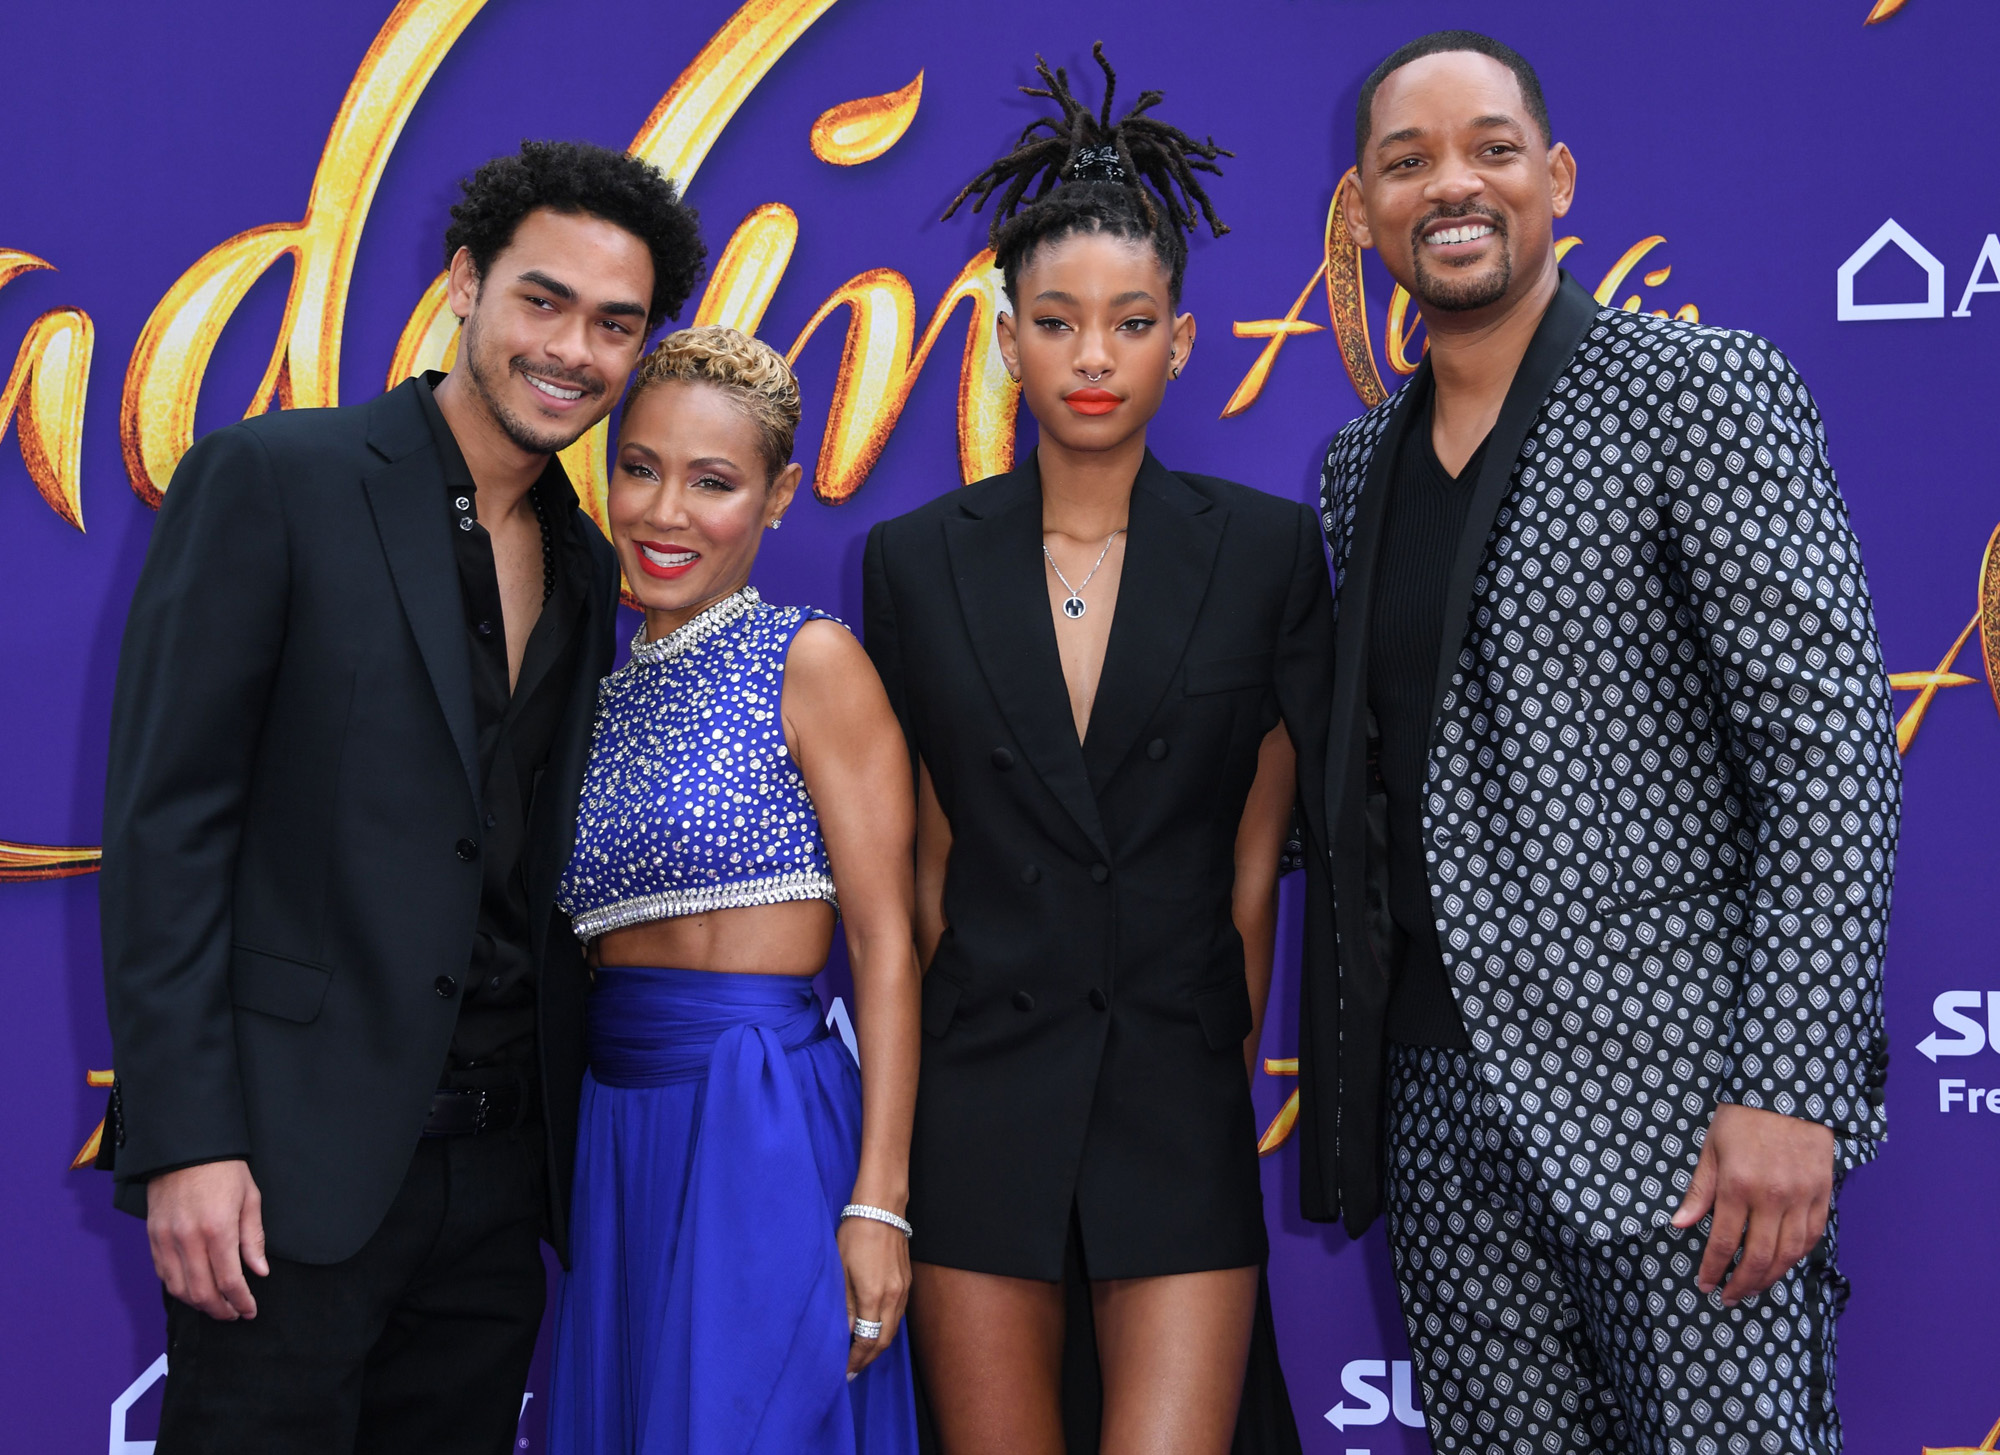 Trey Smith Jada Pinkett Smith Willow Smith and Will Smith Family Aladdin Movie Premiere